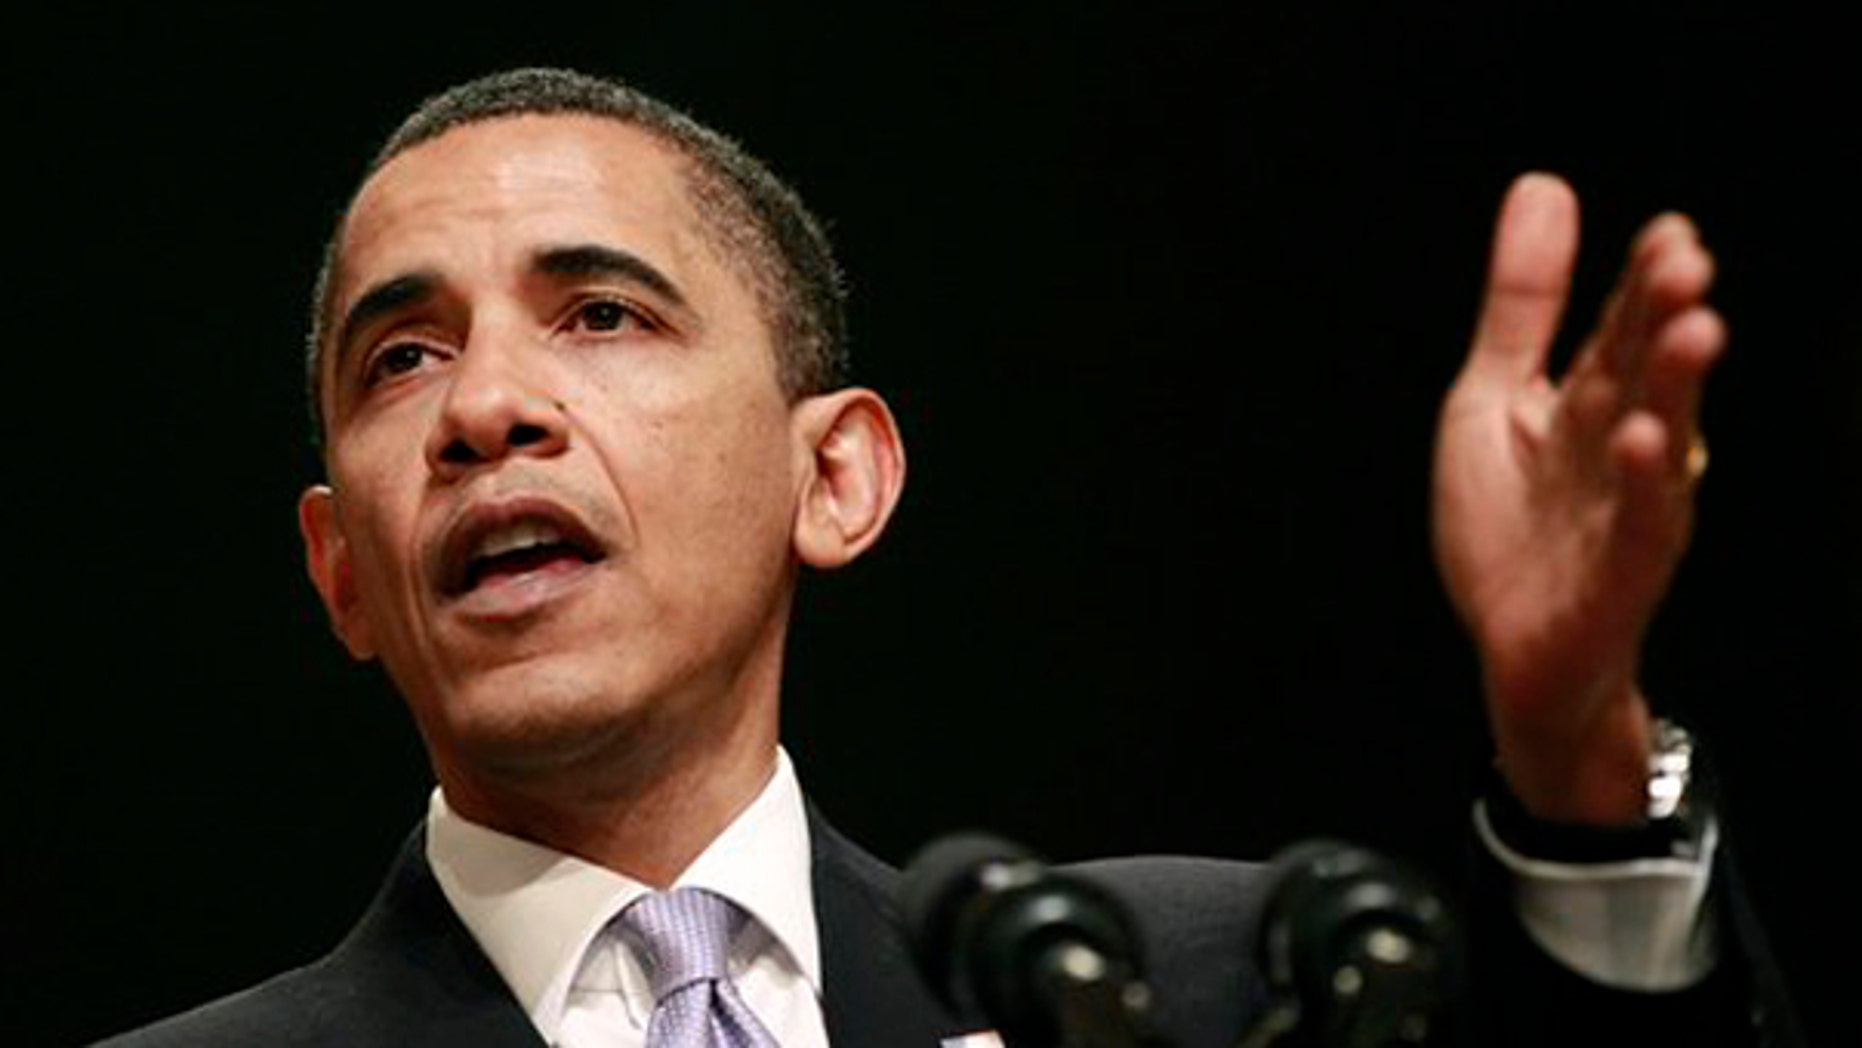 President Obama speaks at a Democratic National Committee fundraiser in Miami April 15. (AP Photo)